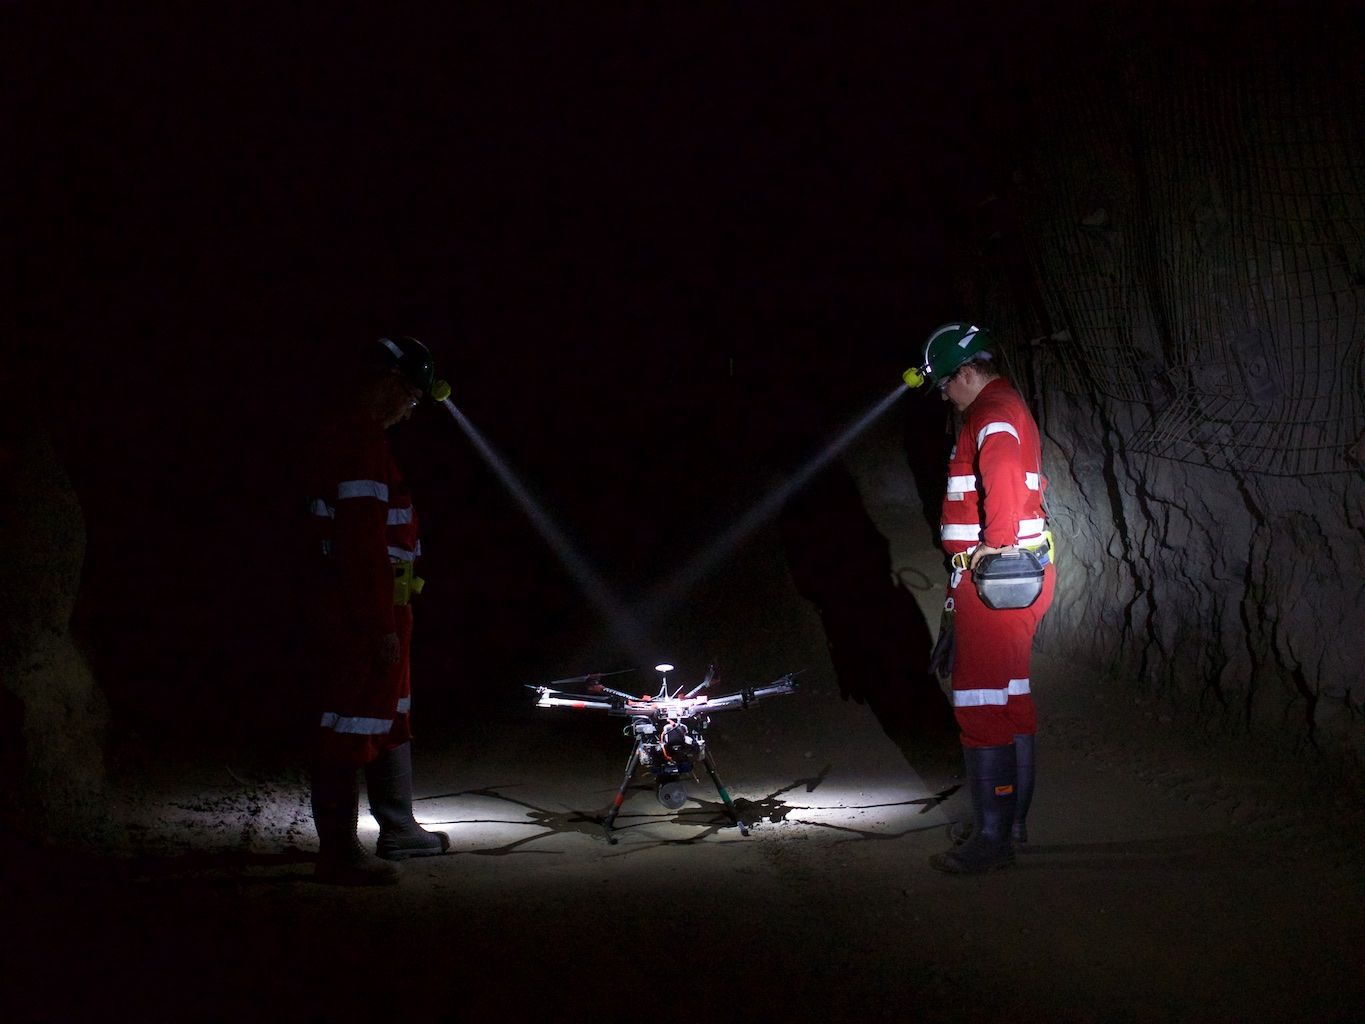 Emesents Hovermap in an underground mine flanked by two people in high-vis clothing wearing hard hats with head lamps.